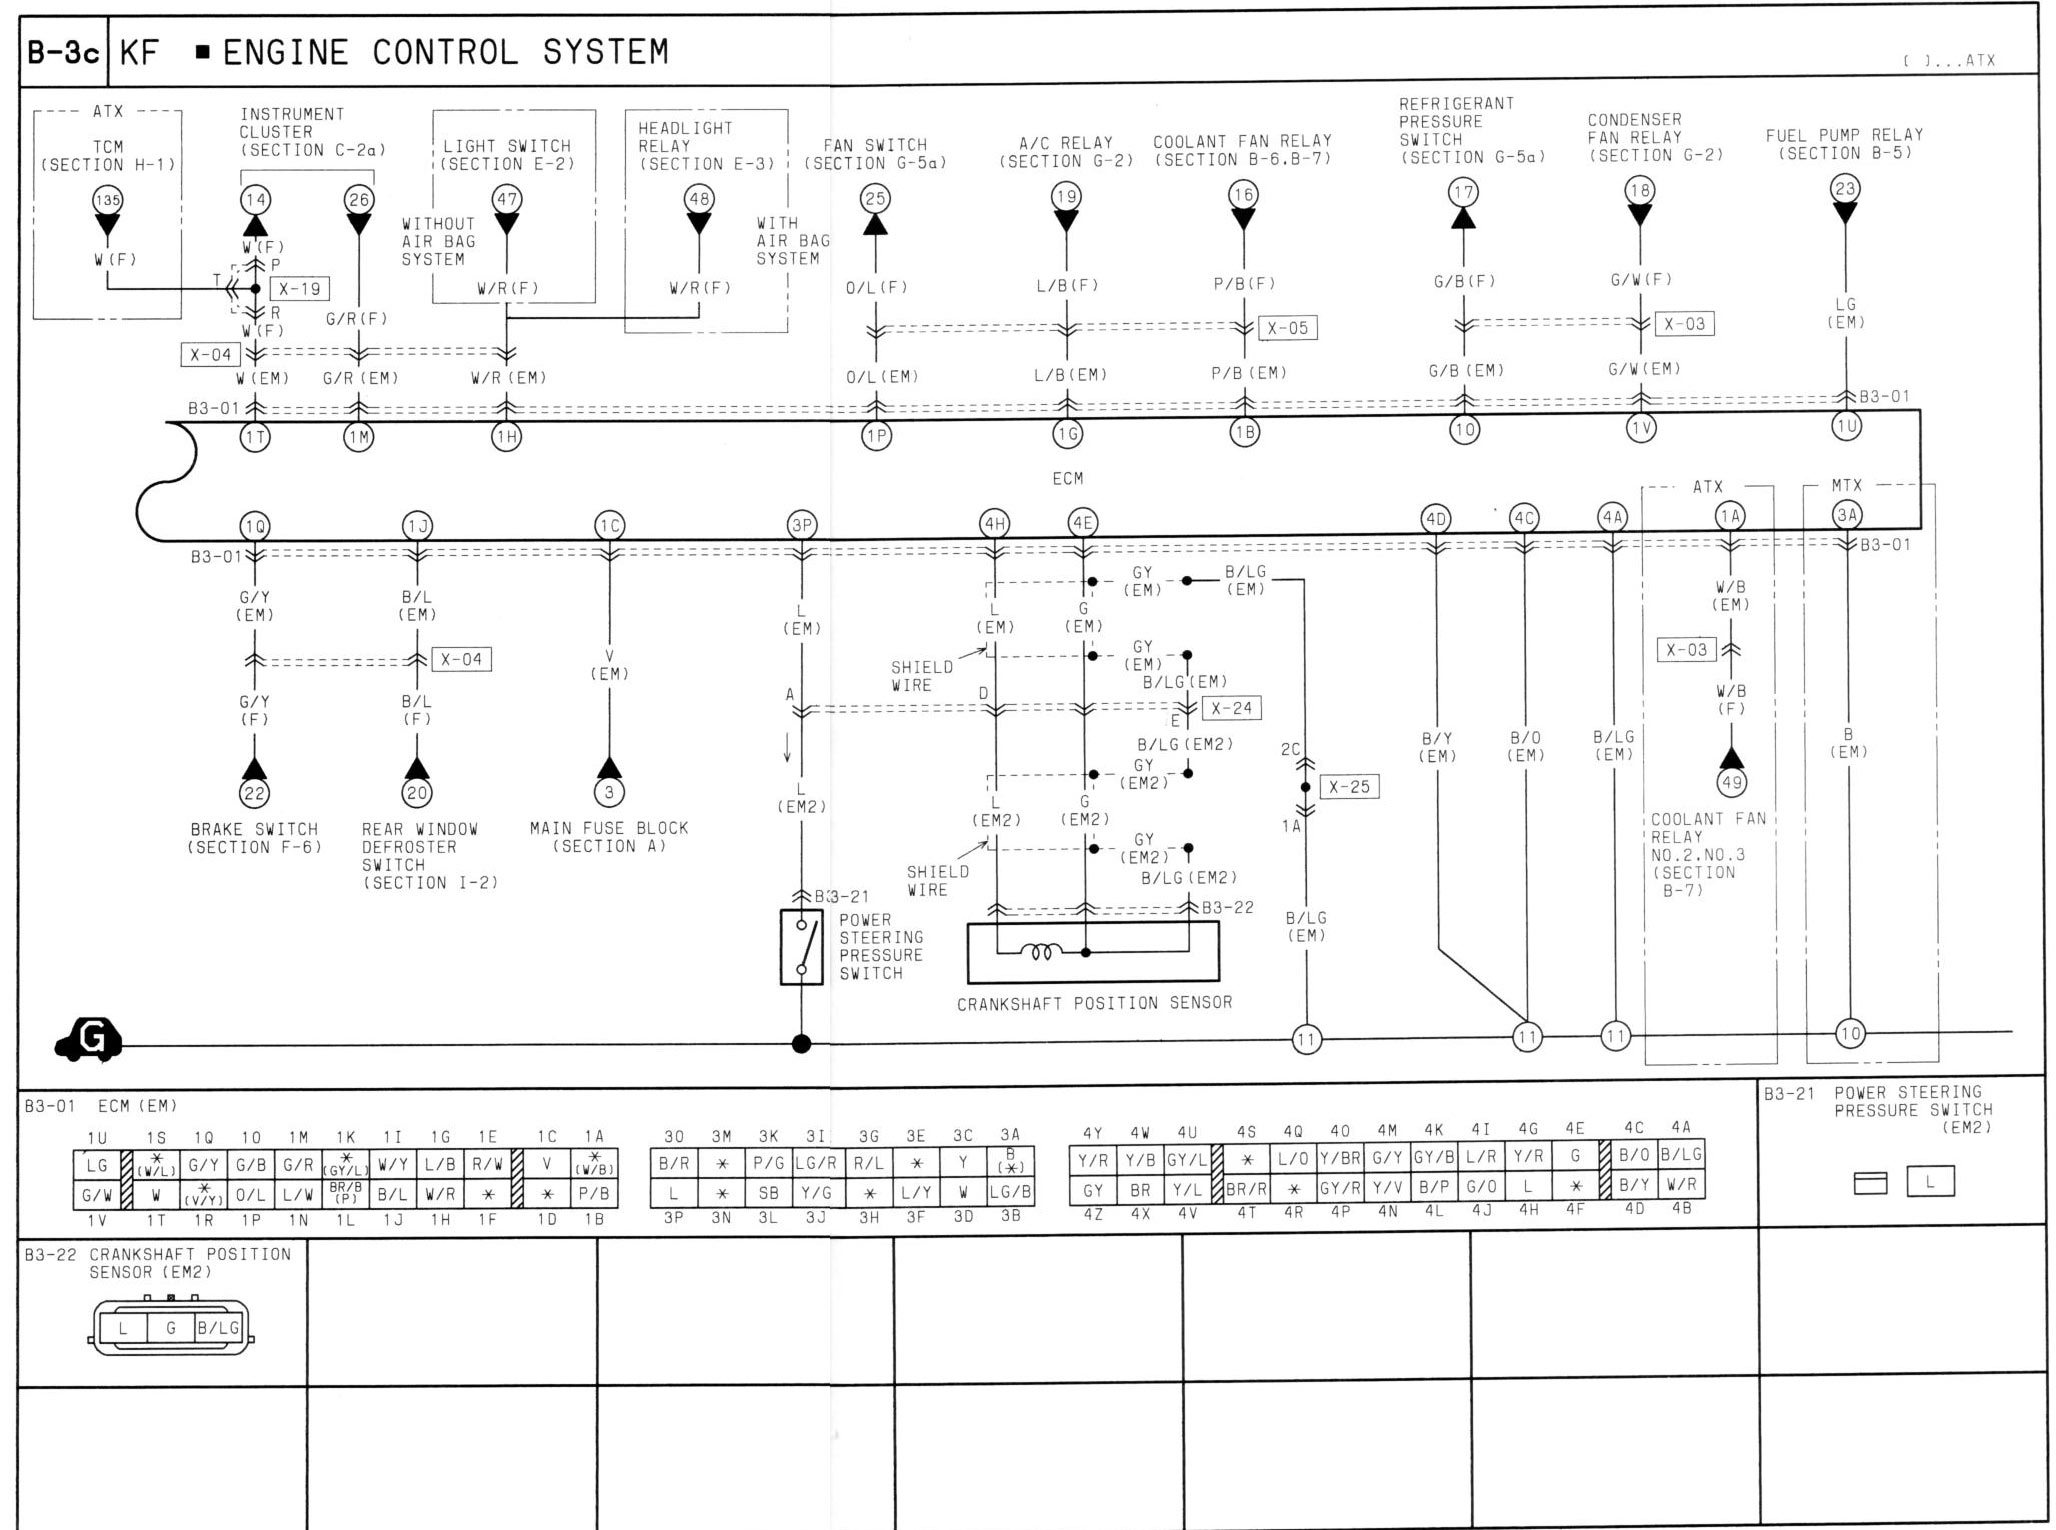 Fuse Box Mazda 626 2000 Wiring Library Lantis V6 Diagram Schematics Diagrams U2022 Rh Parntesis Co